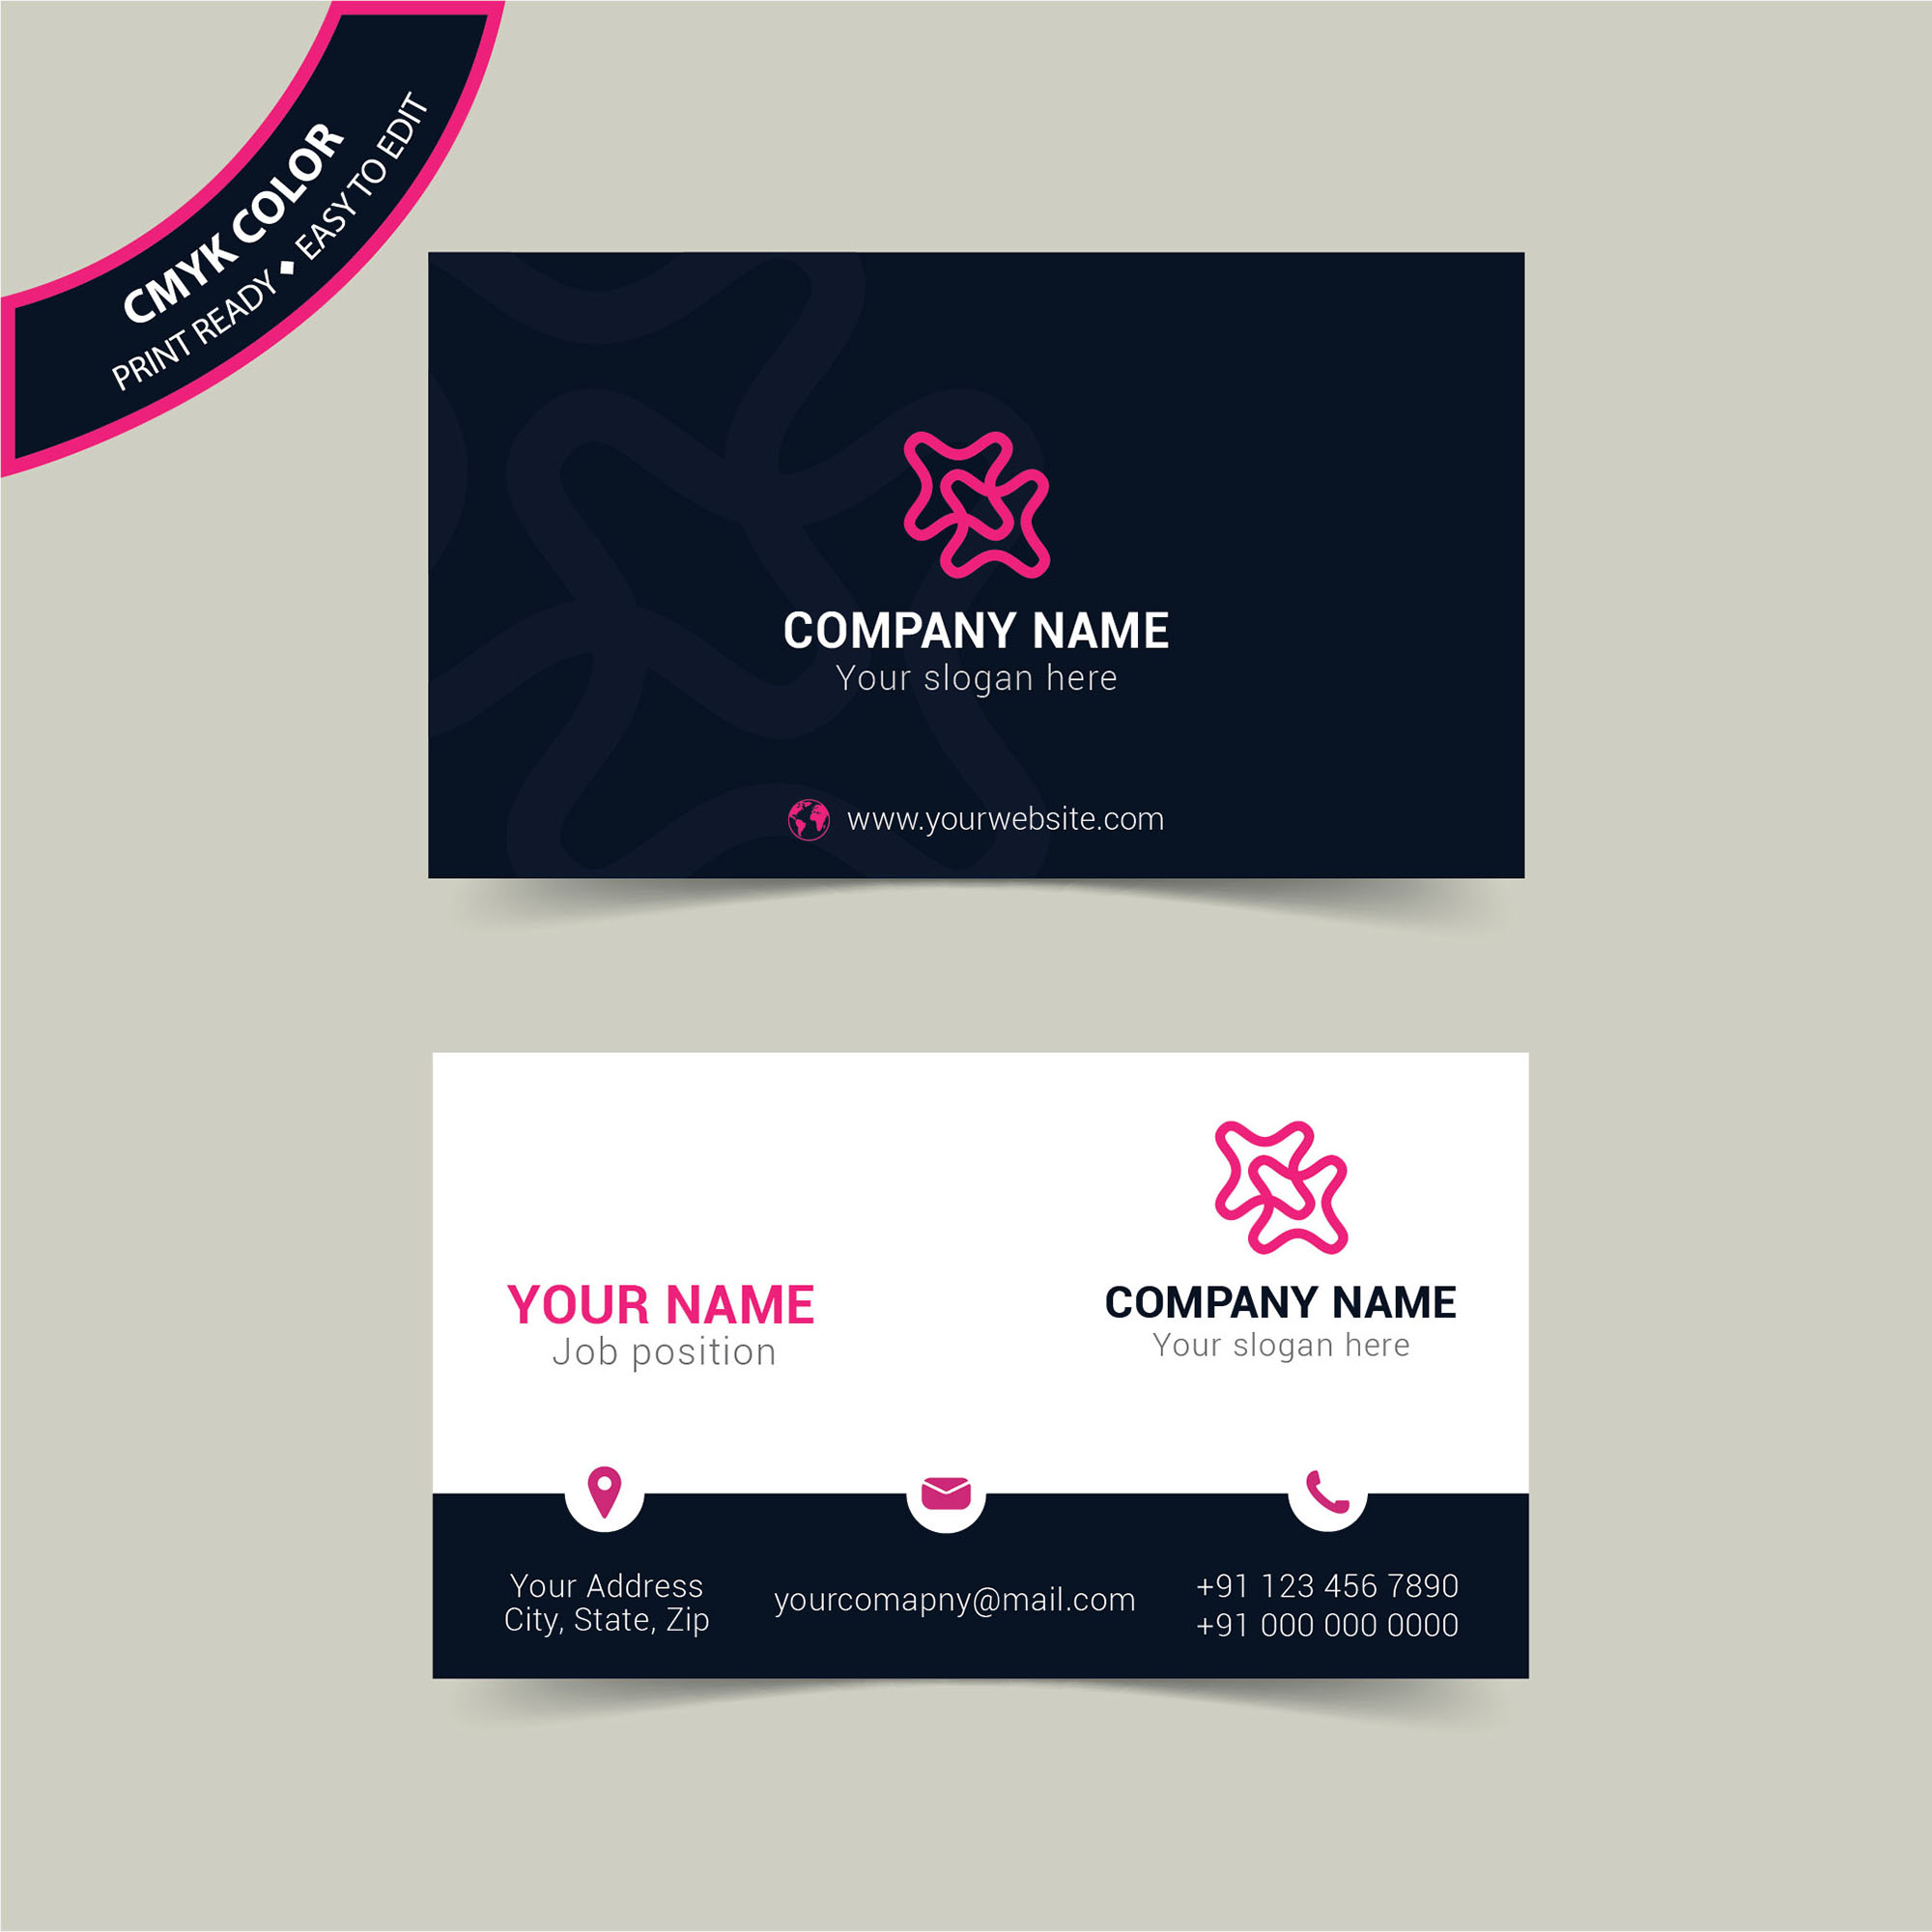 Modern simple business card template free download - Wisxi.com